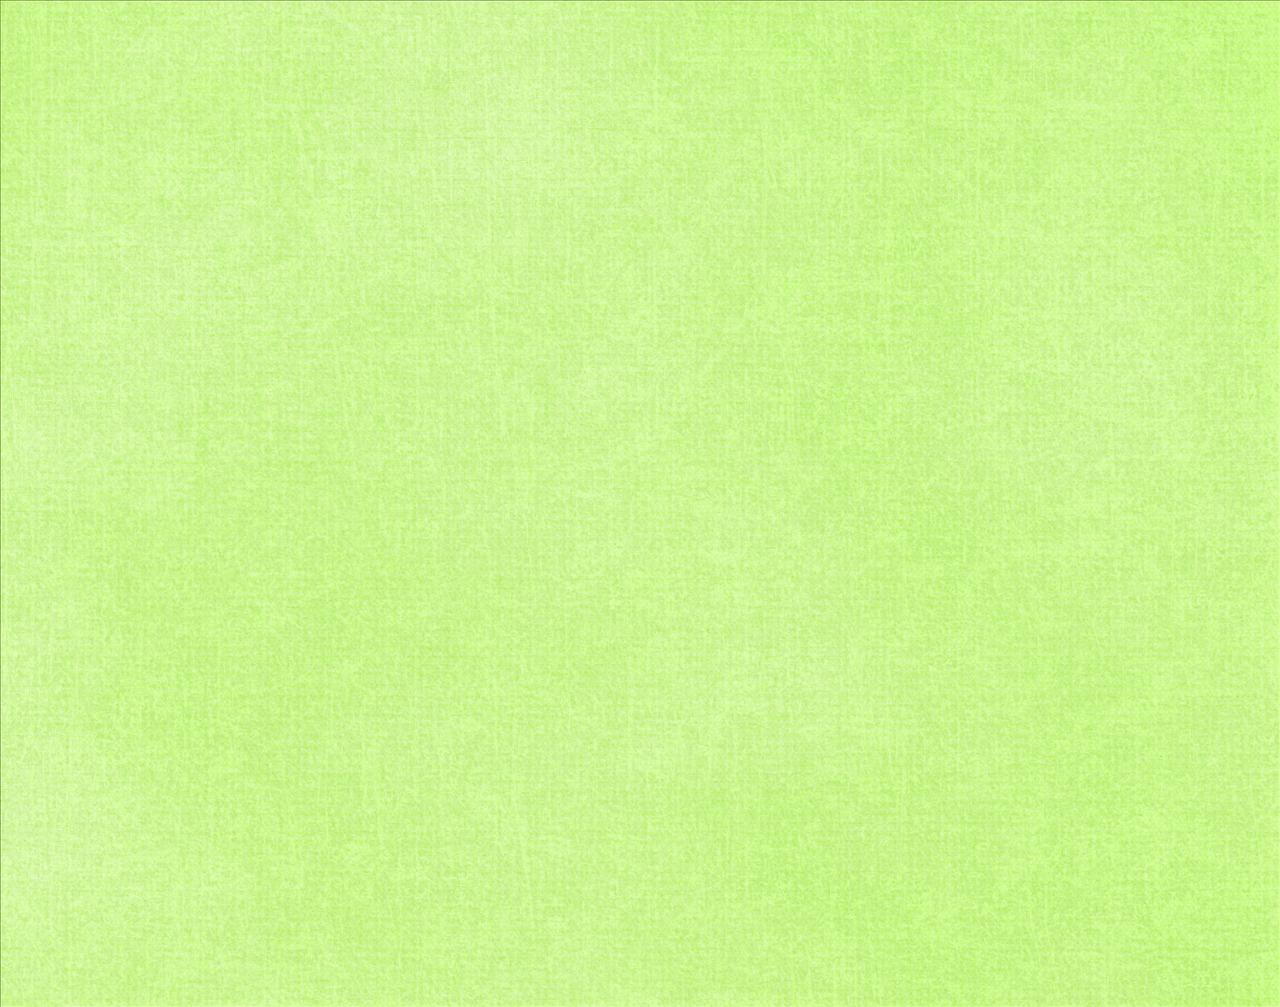 Light Green Backgrounds - Wallpaper Cave